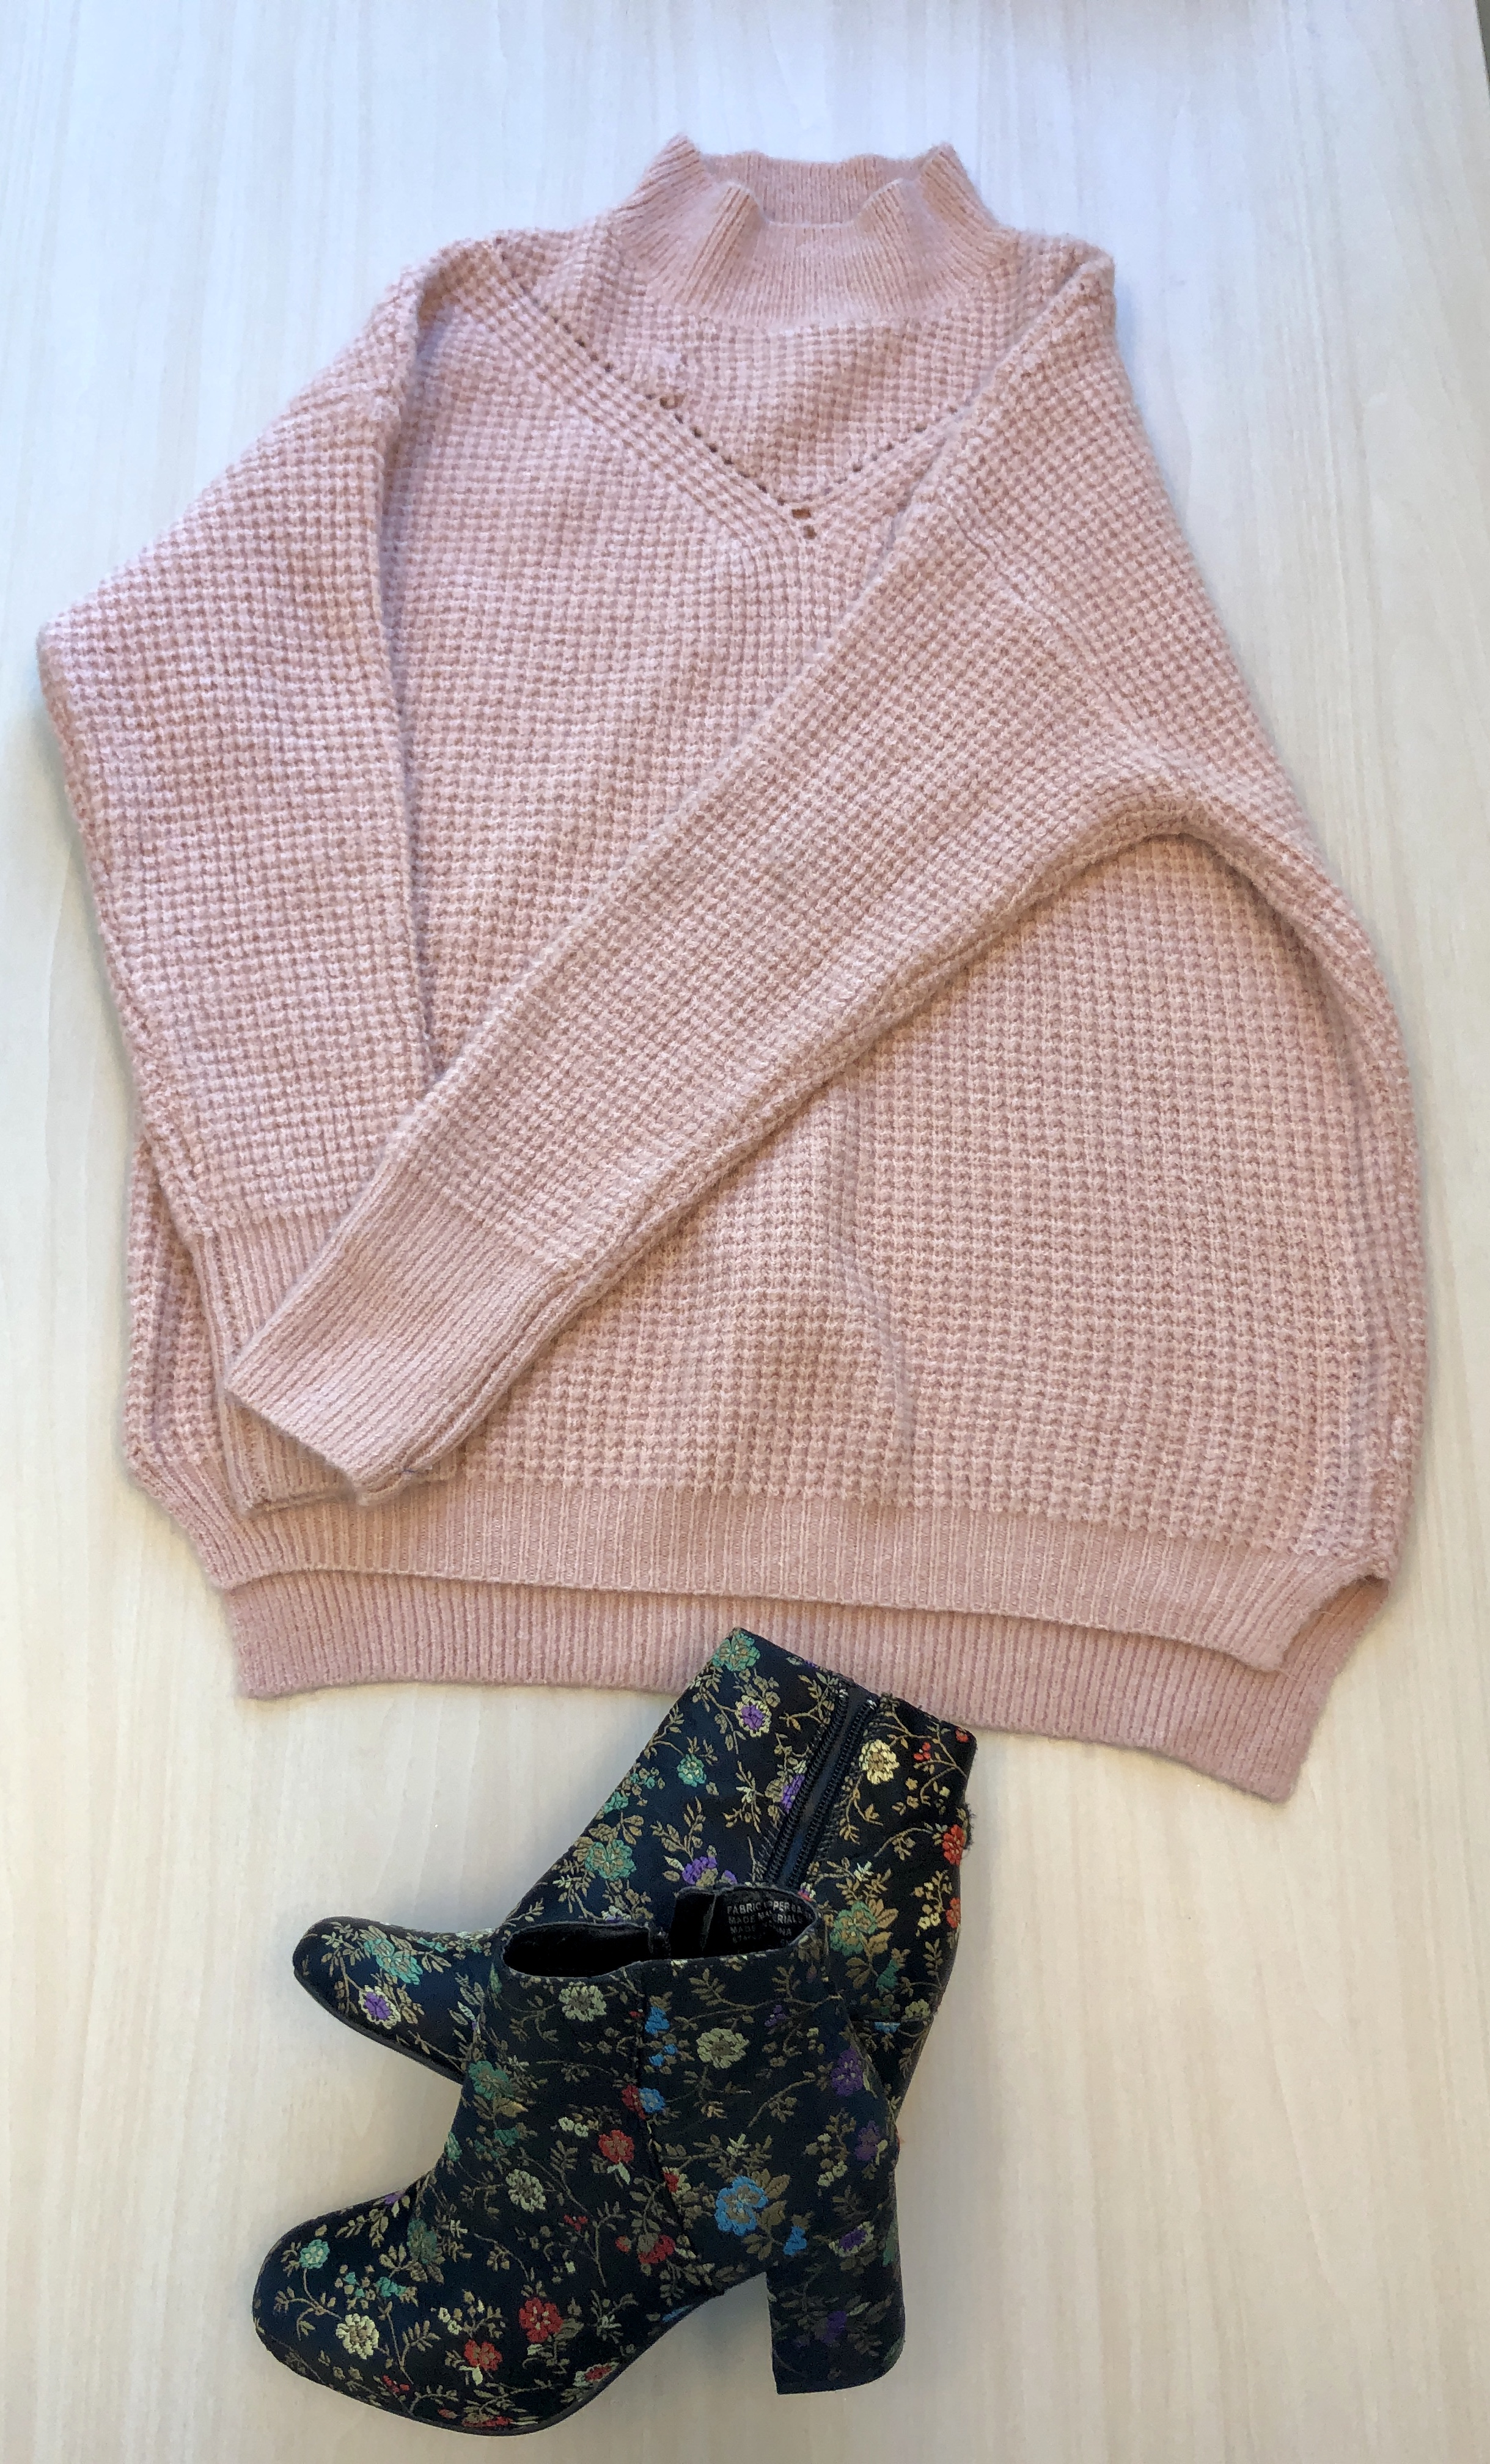 Pink sweater and floral heels